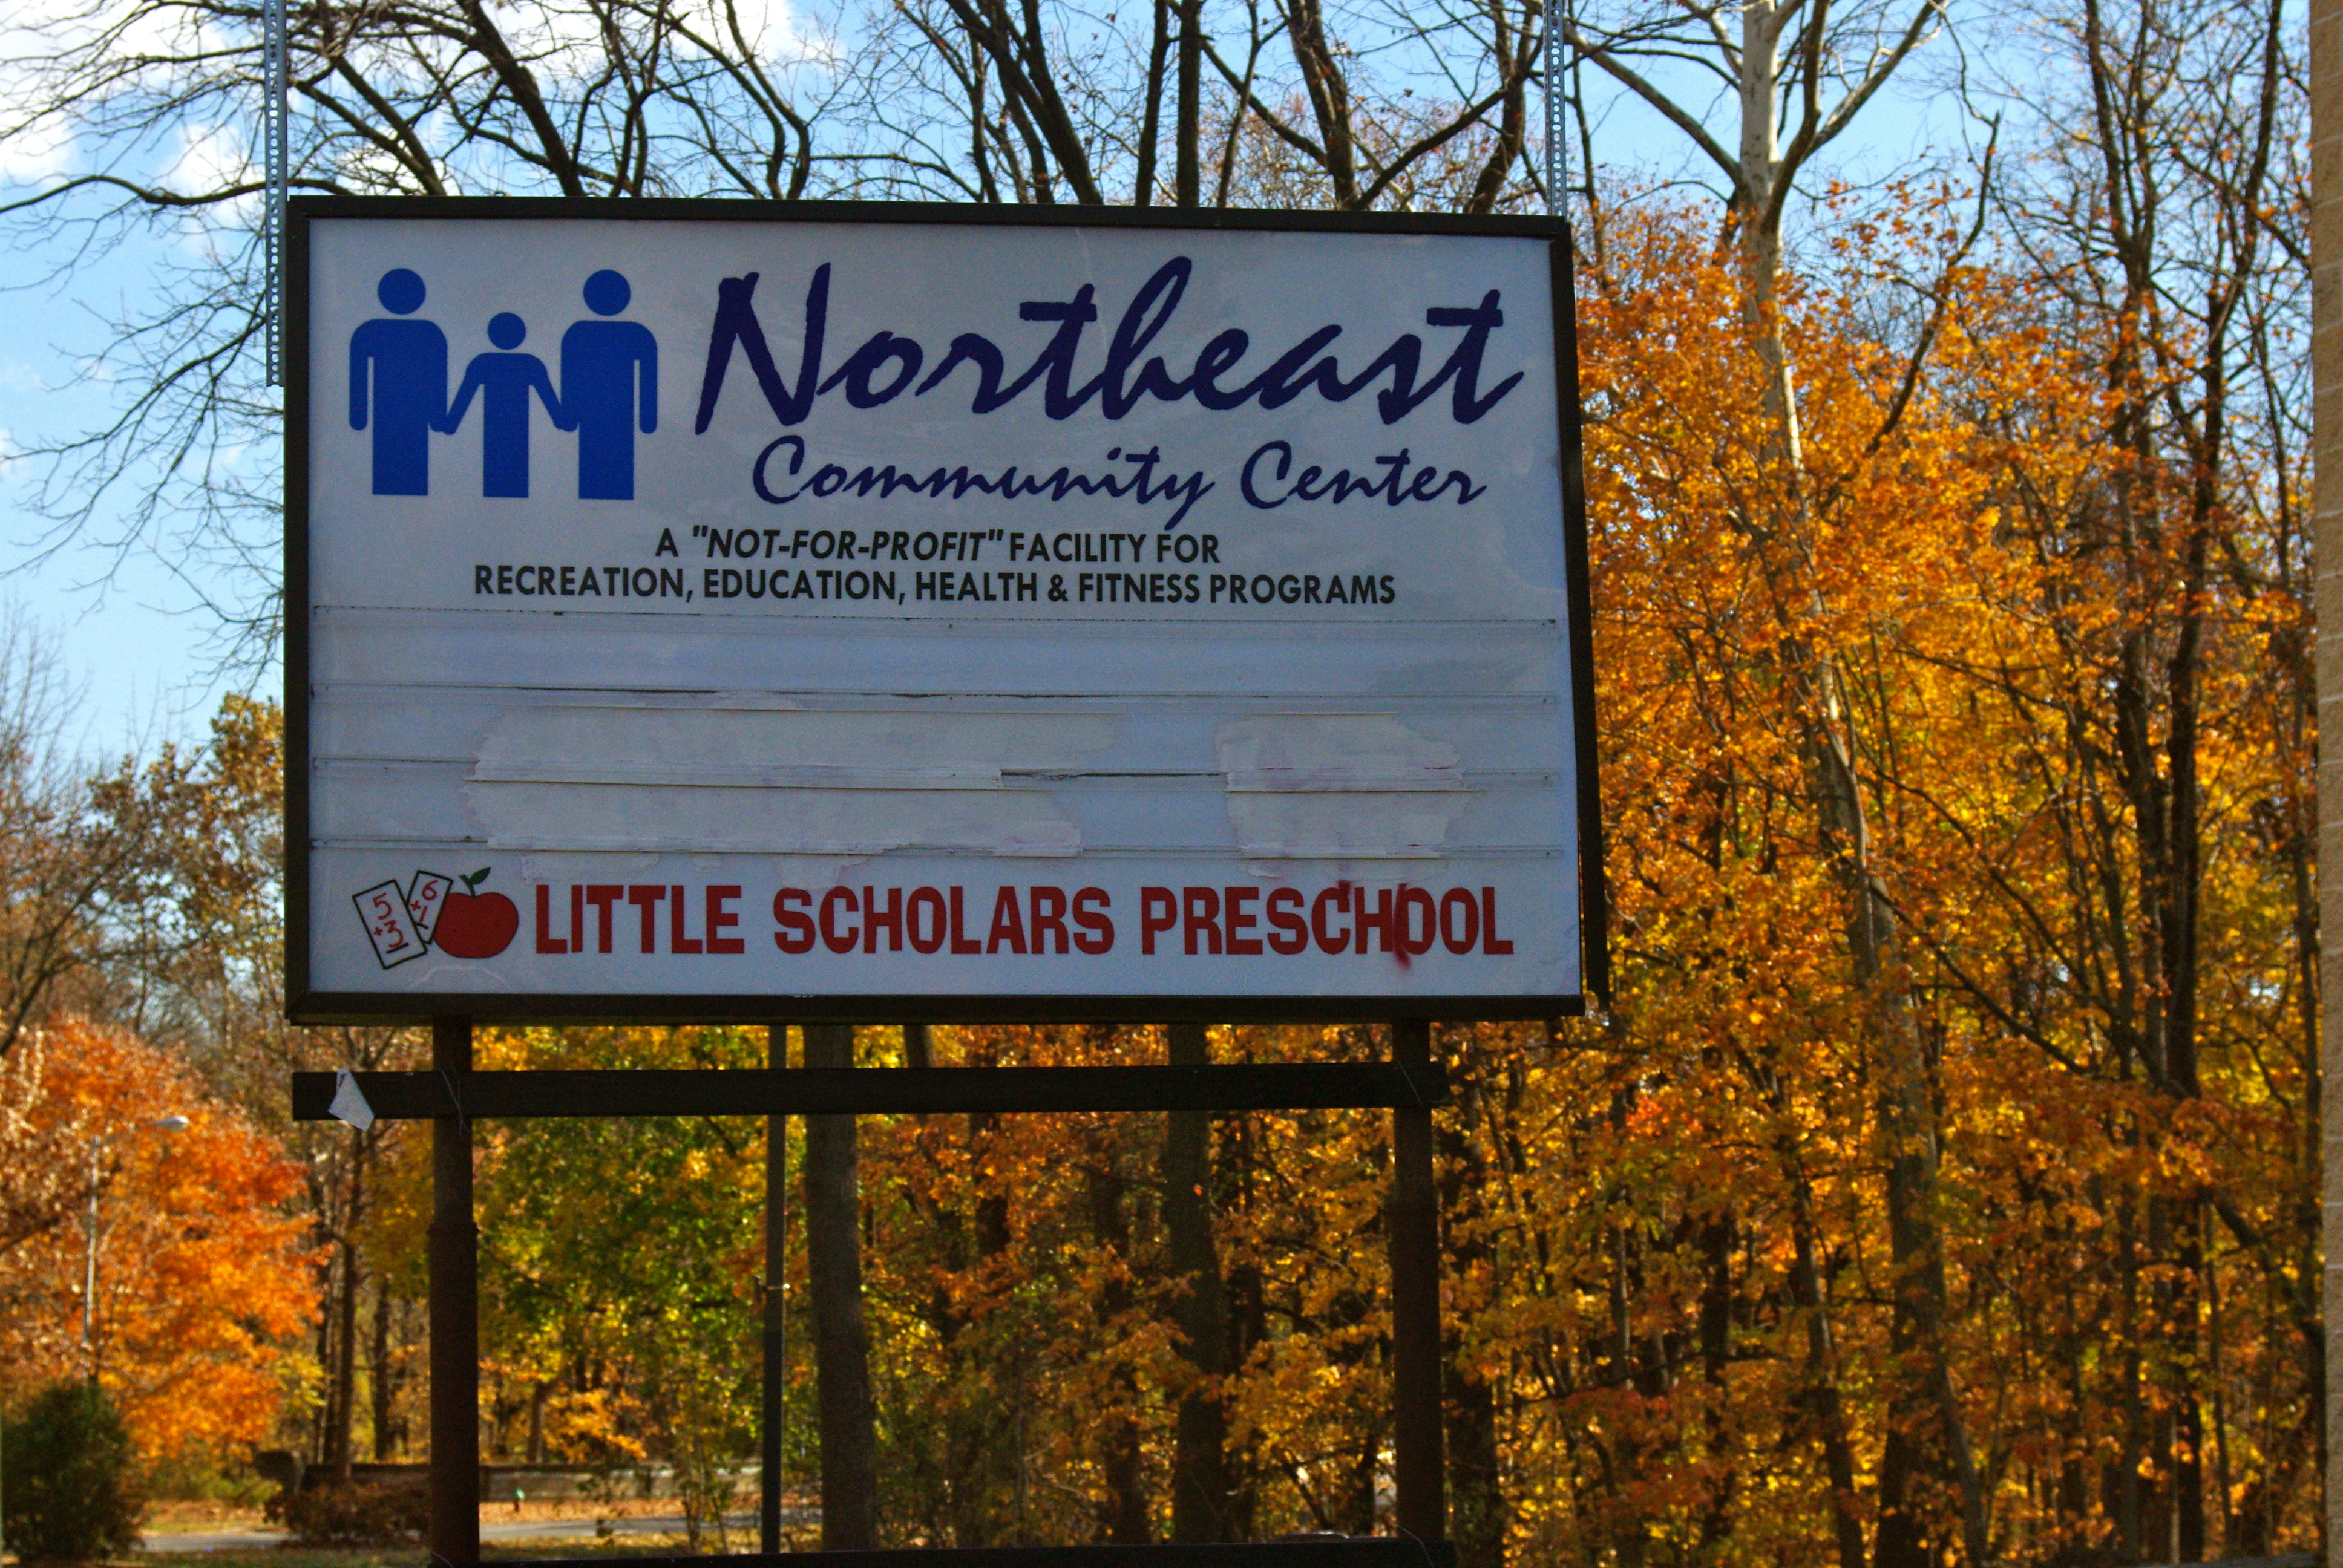 The Northeast Community Center was foreclosed in November 2012, but new tenants should begin using the space later this week.